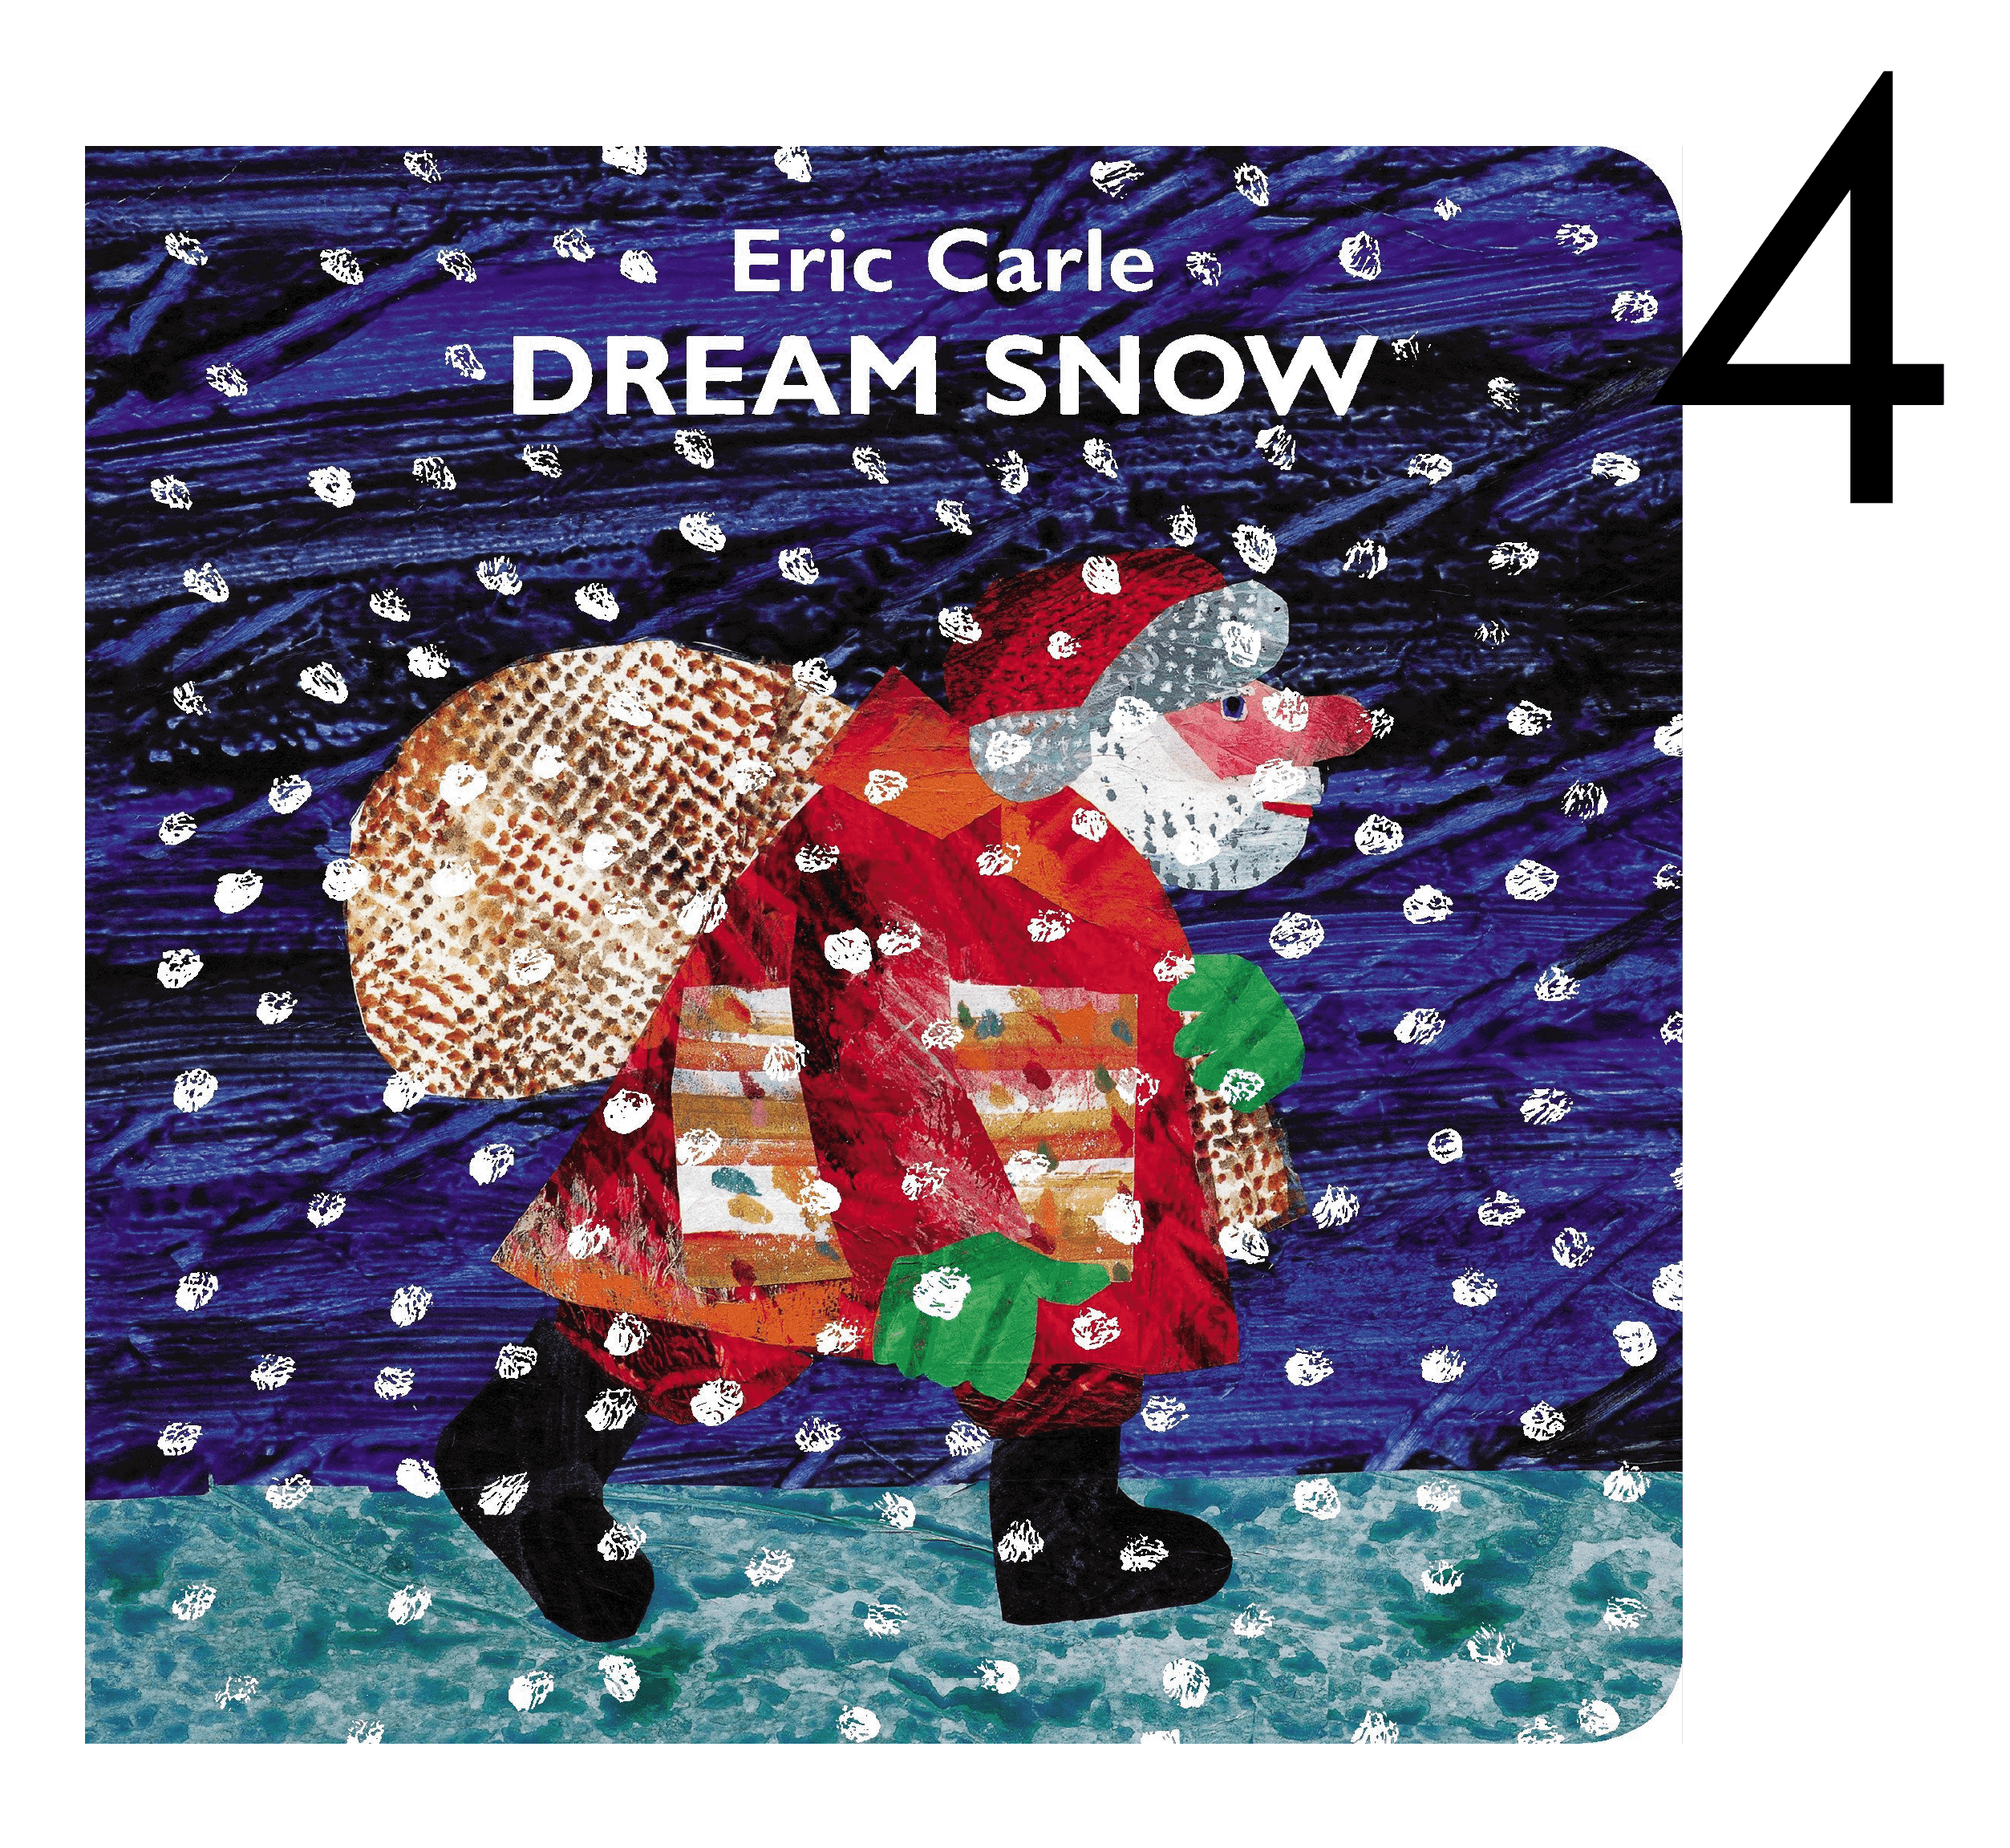 Dream Snow by Eric Carle Collection of Christmas and Holiday Books for Apple Slices